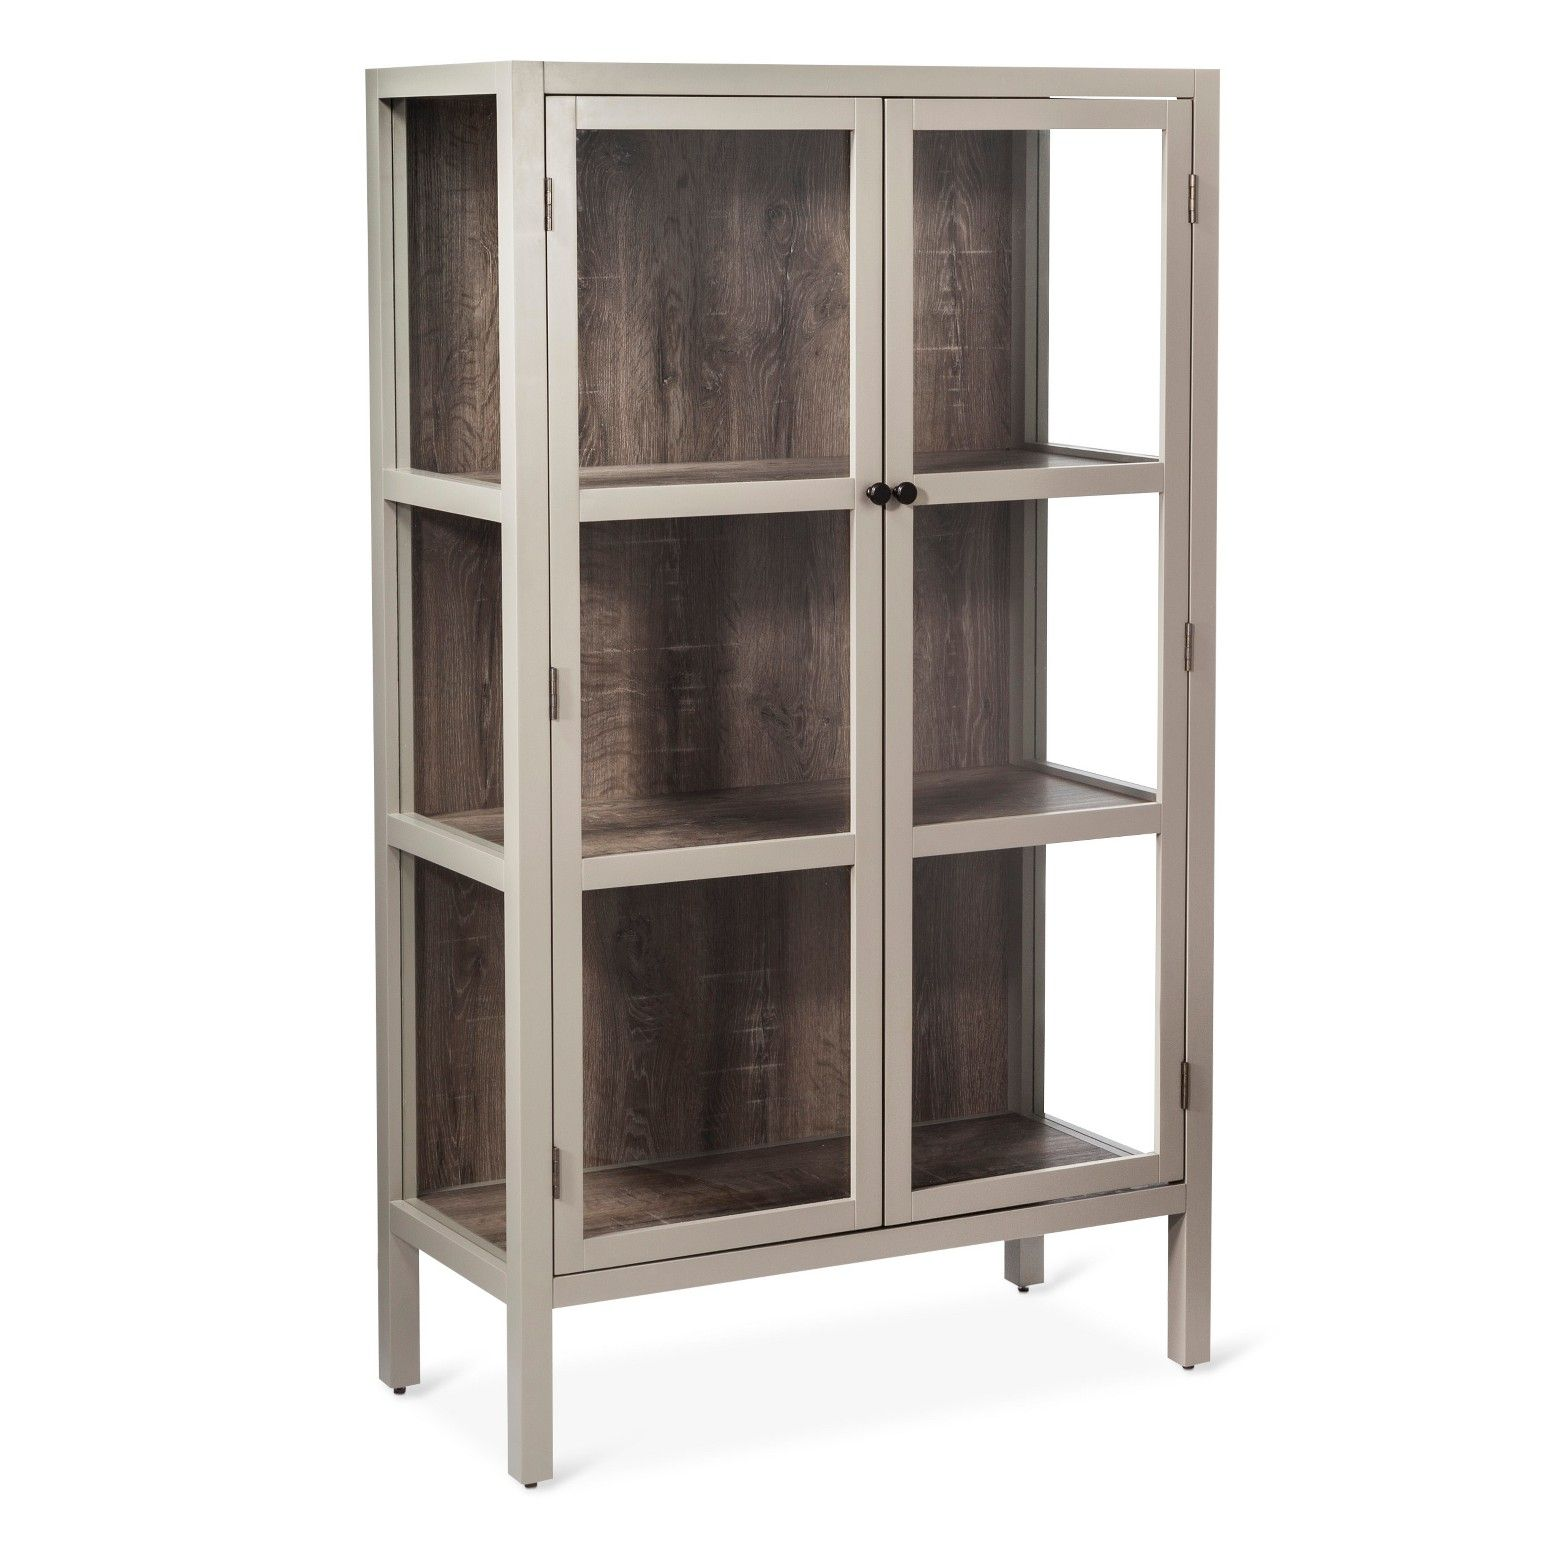 The Vista Library Cabinet With Glass Threshold Combines The